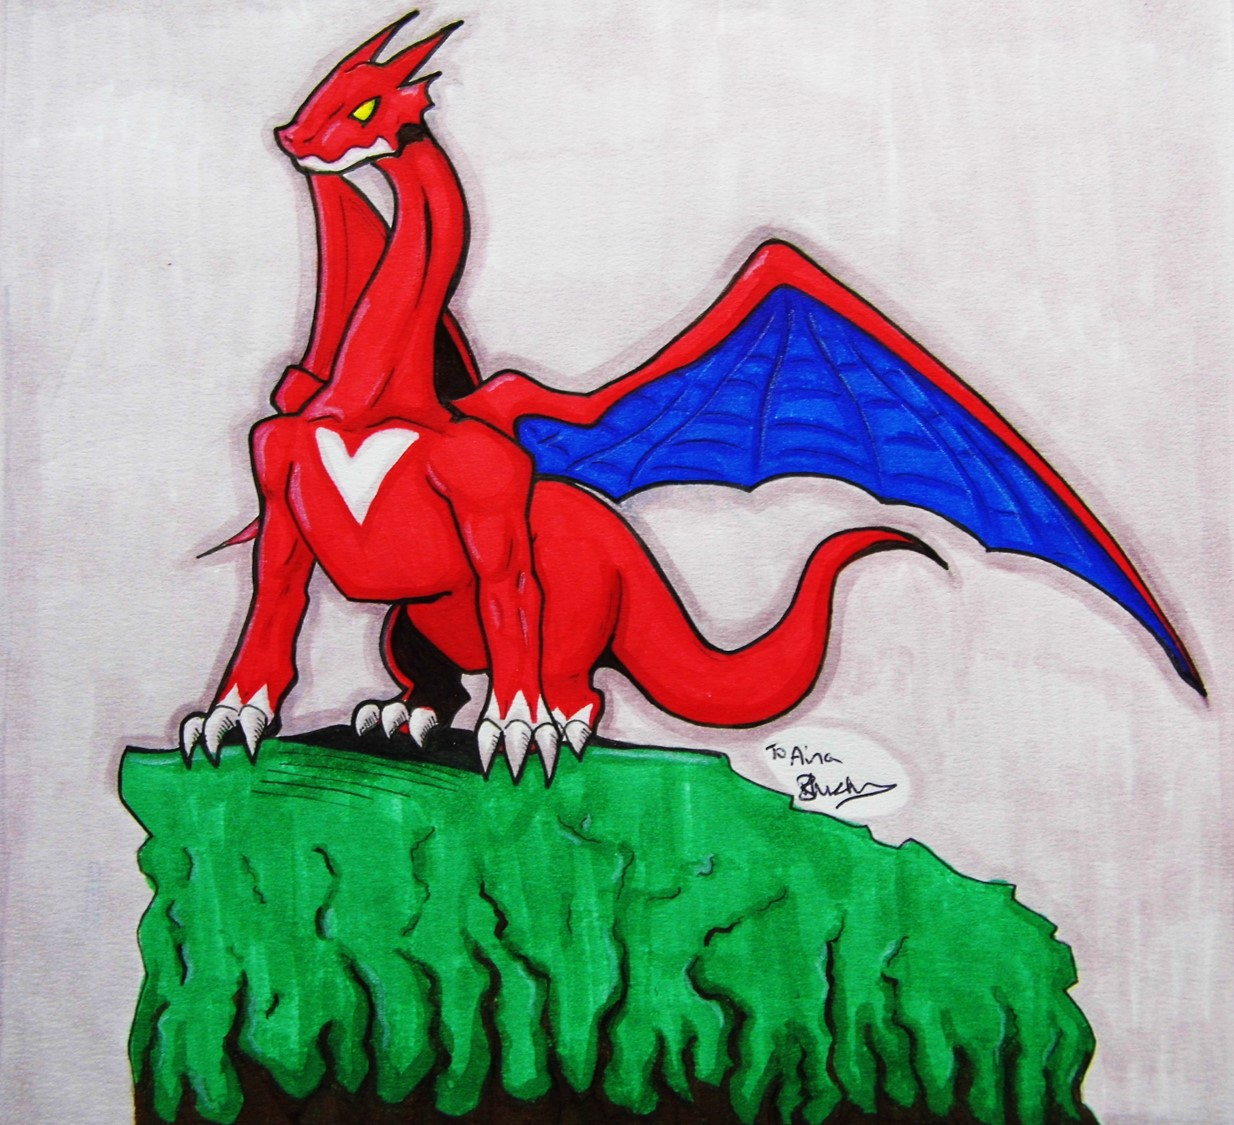 The Norwegian Dragon